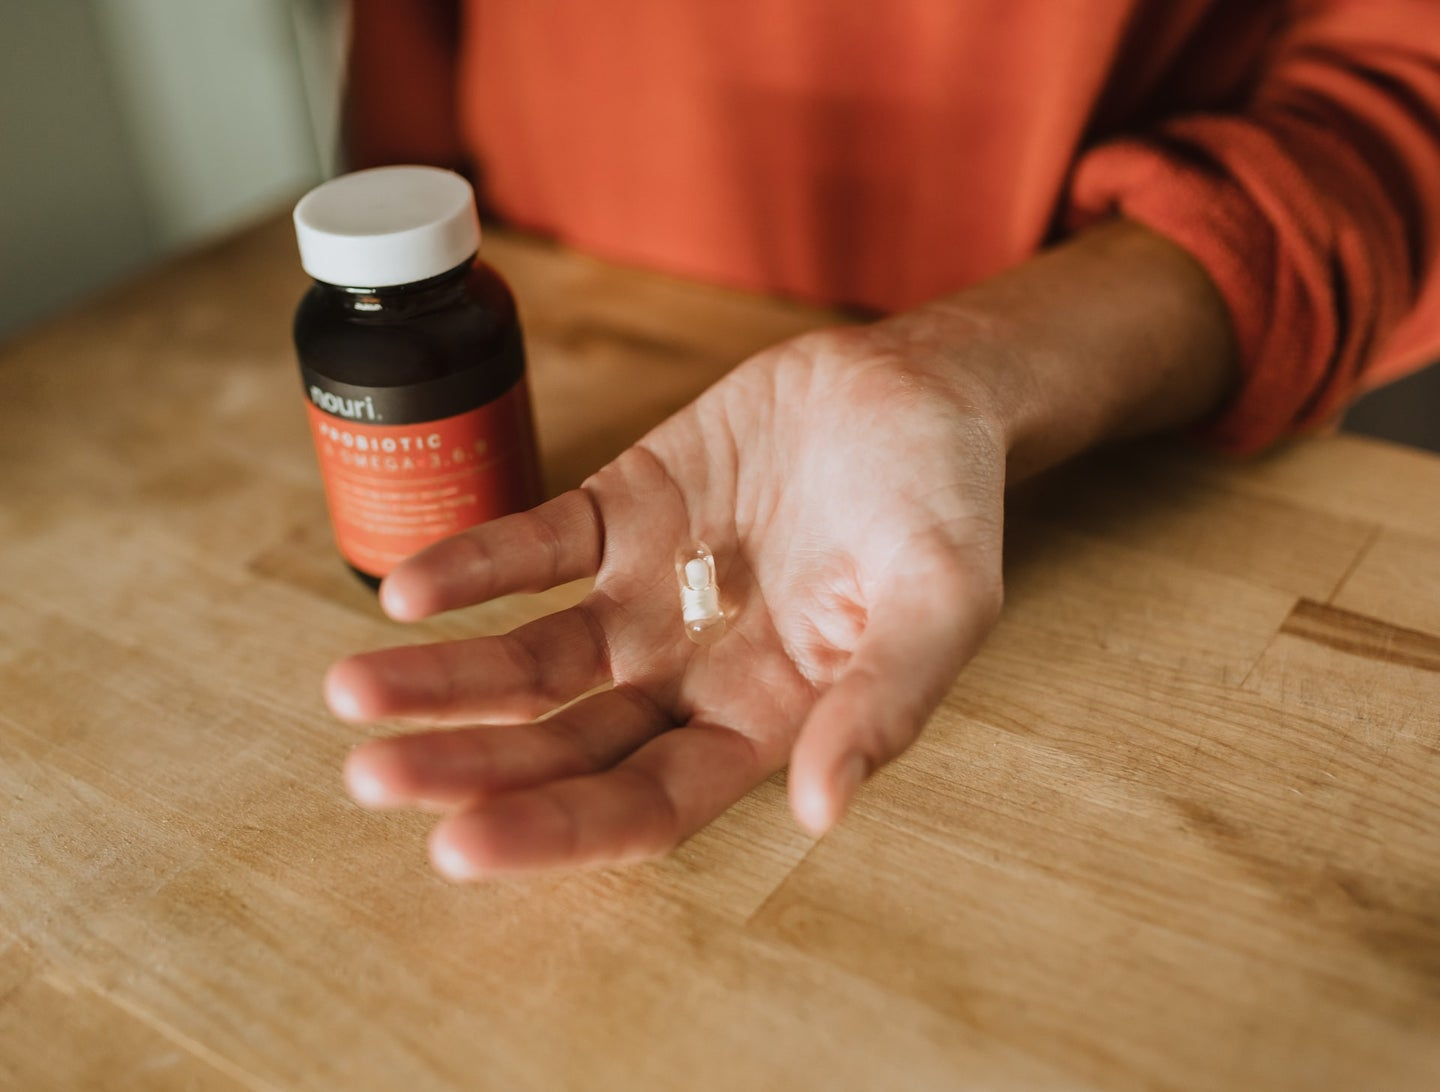 Person in an orange shift holding a white probiotic pull next to a brown vitamin bottle